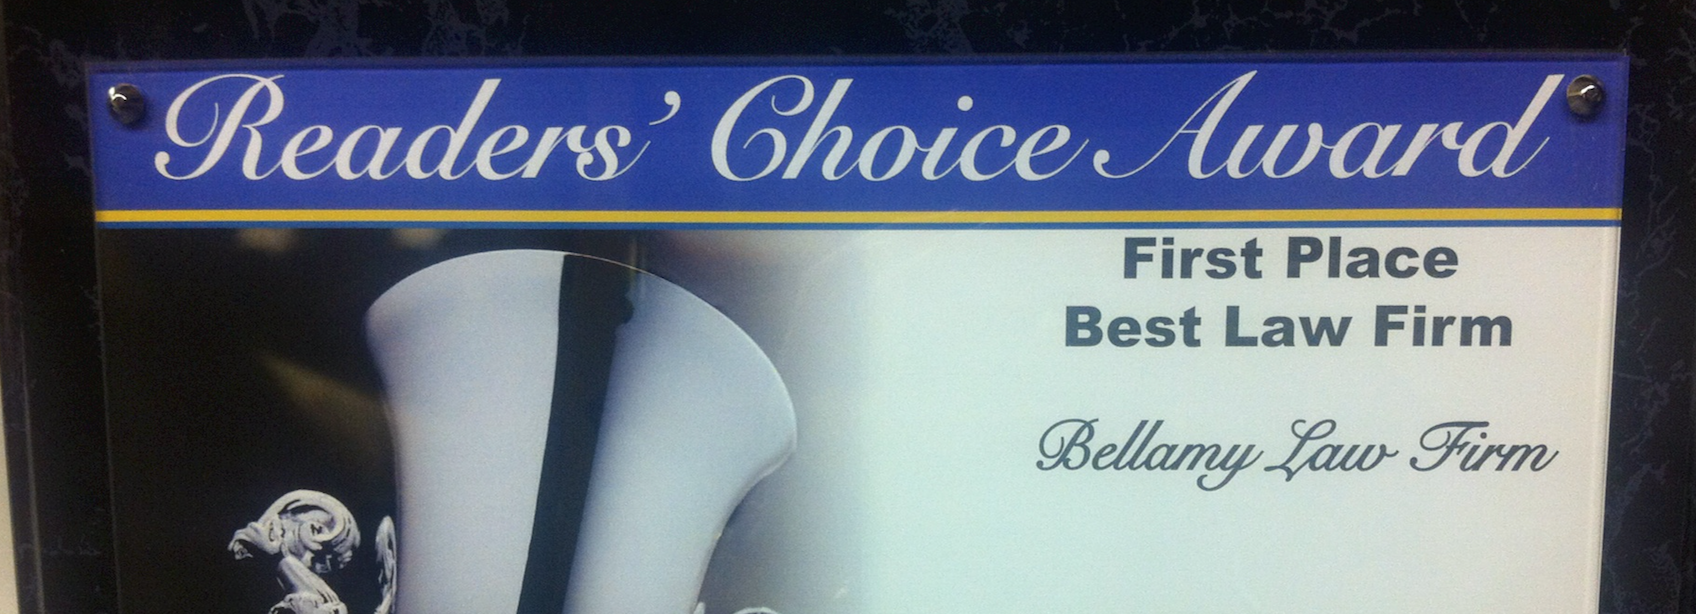 The Bellamy Law Firm voted the Best Law Firm in Myrtle Beach